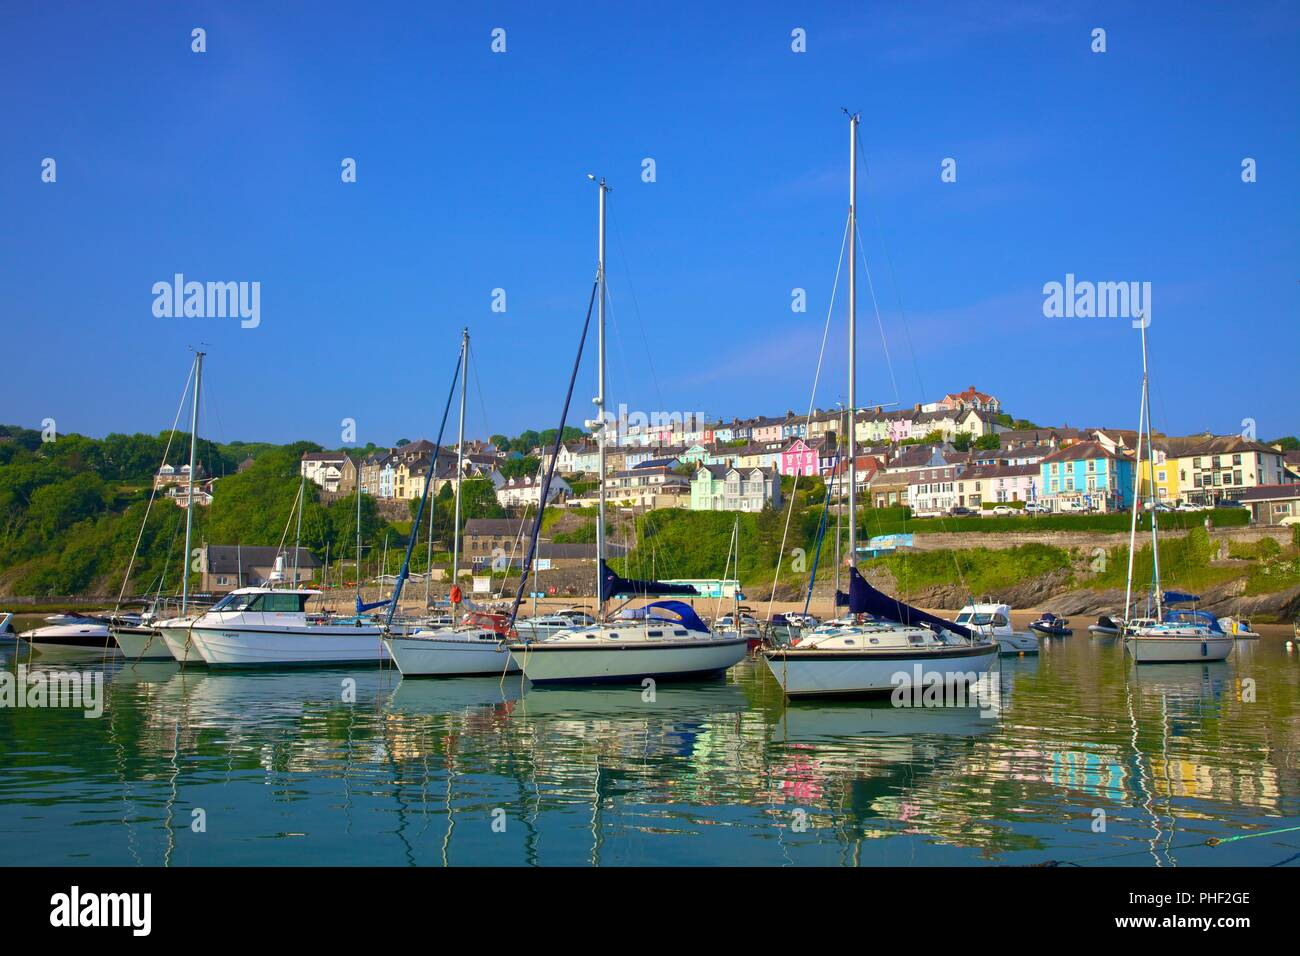 The Harbour at New Quay, Cardigan Bay, Wales, United Kingdom, Europe, - Stock Image